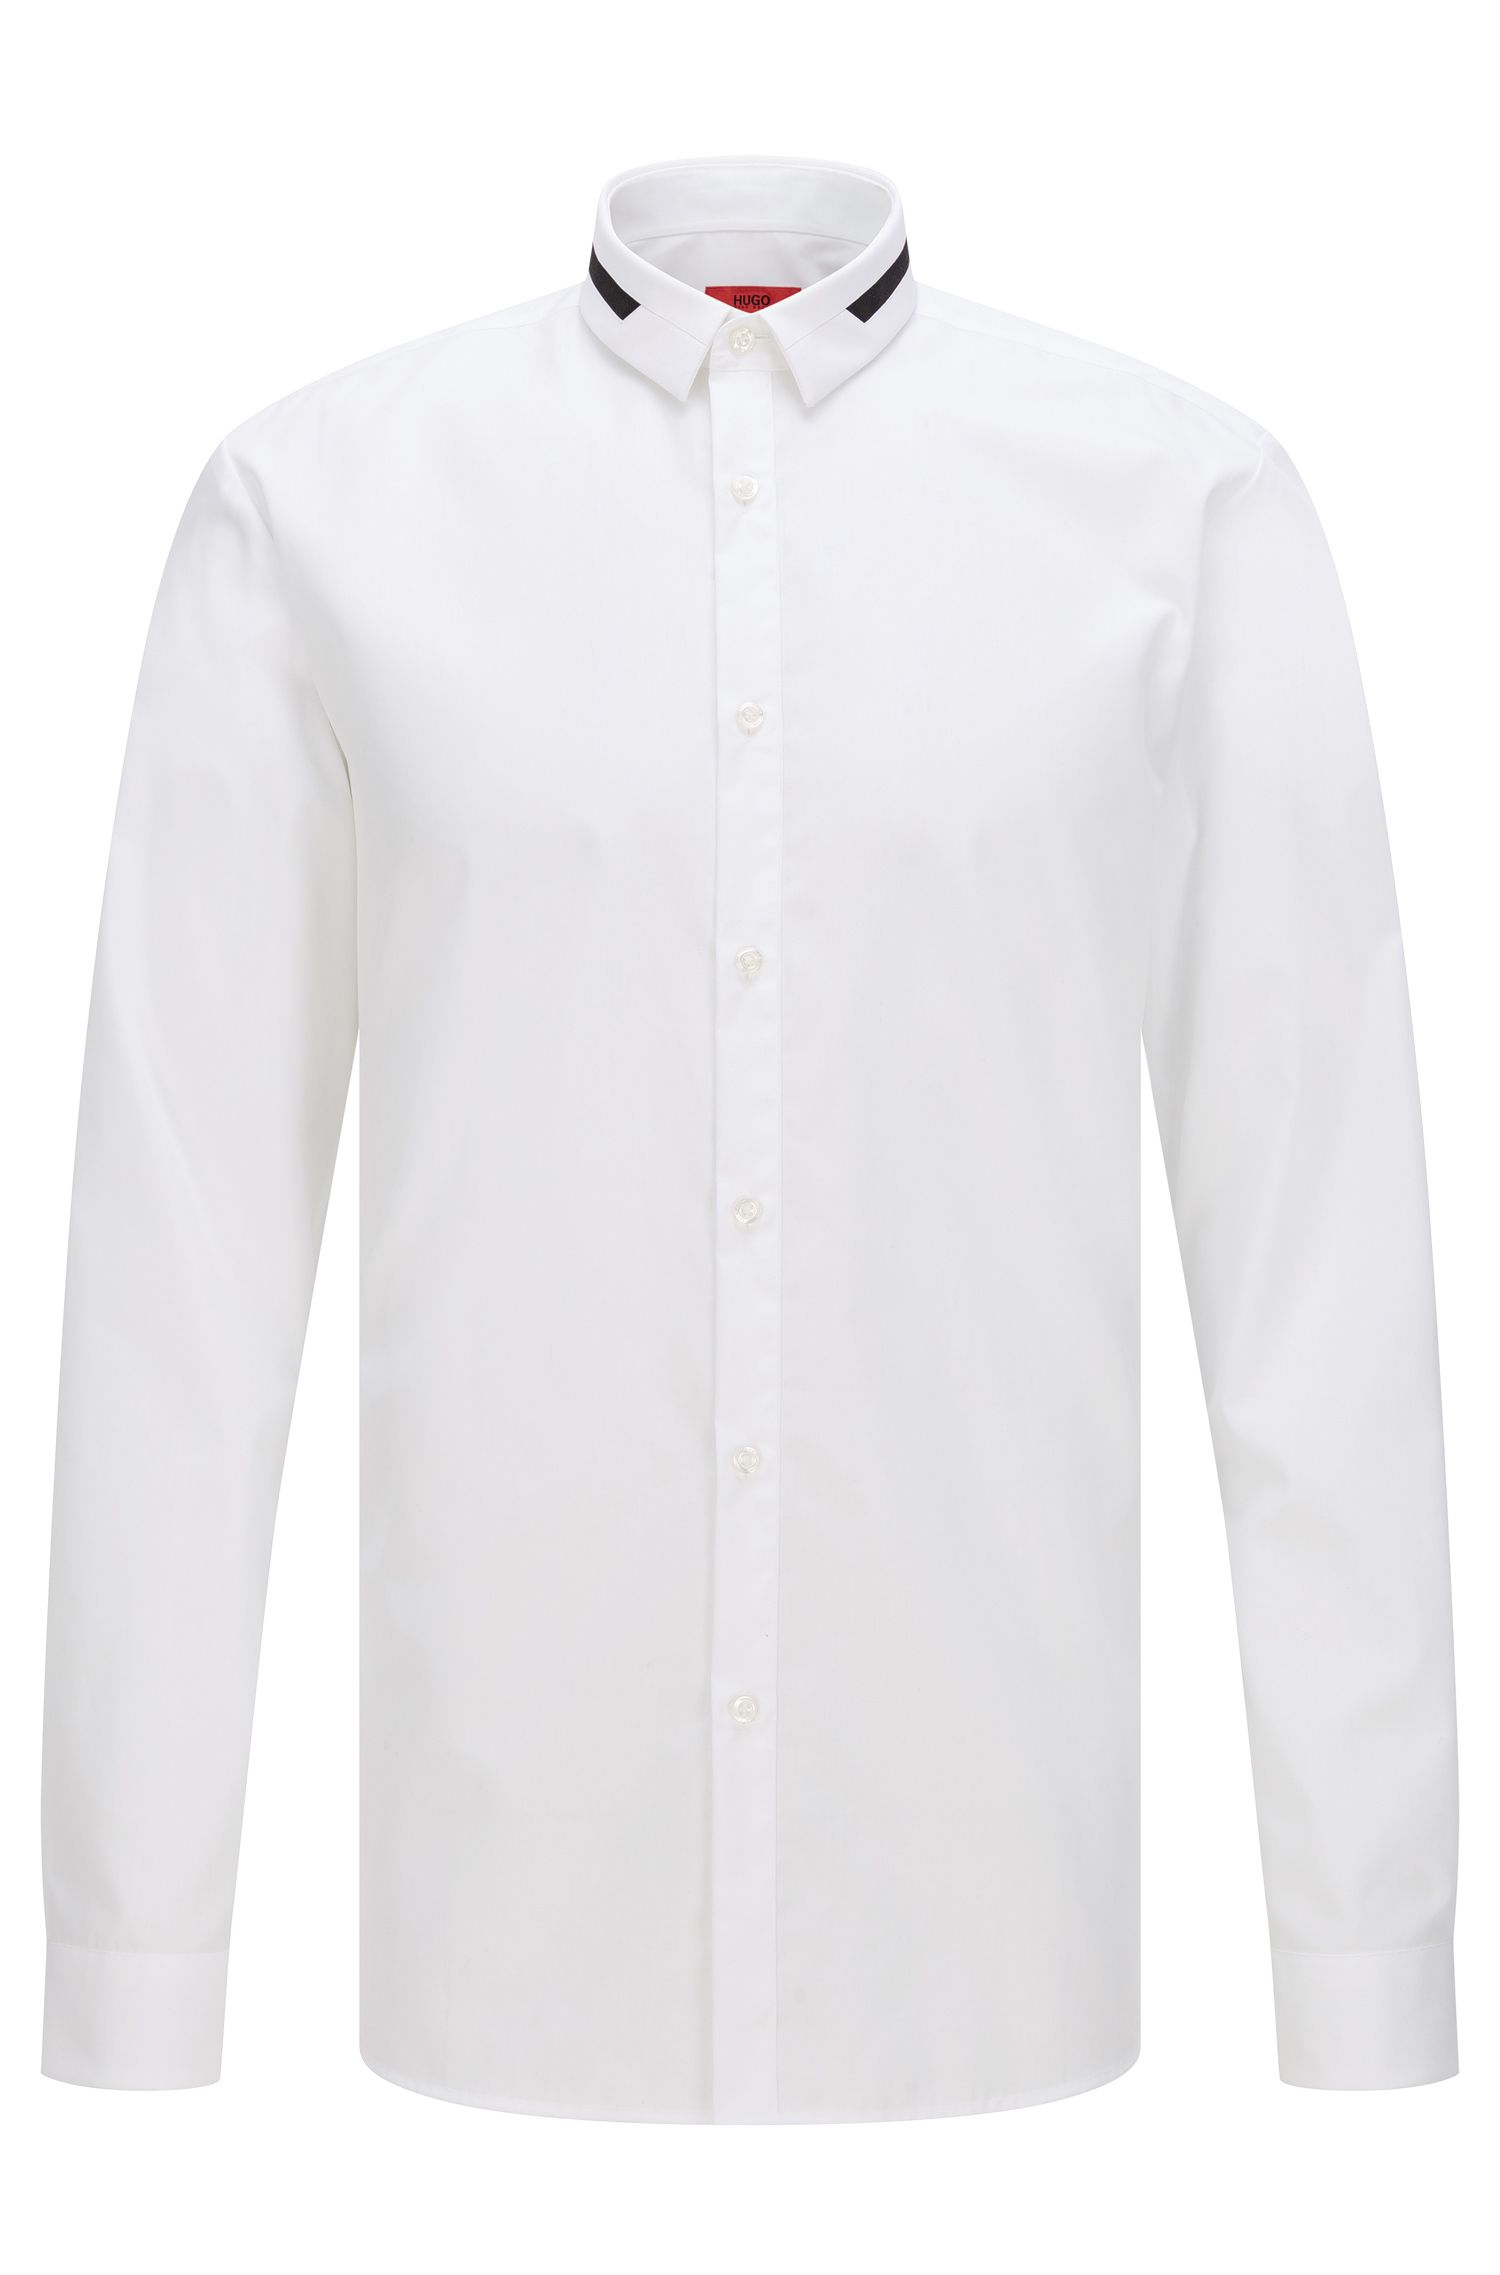 Extra-slim-fit shirt in cotton with contrast details